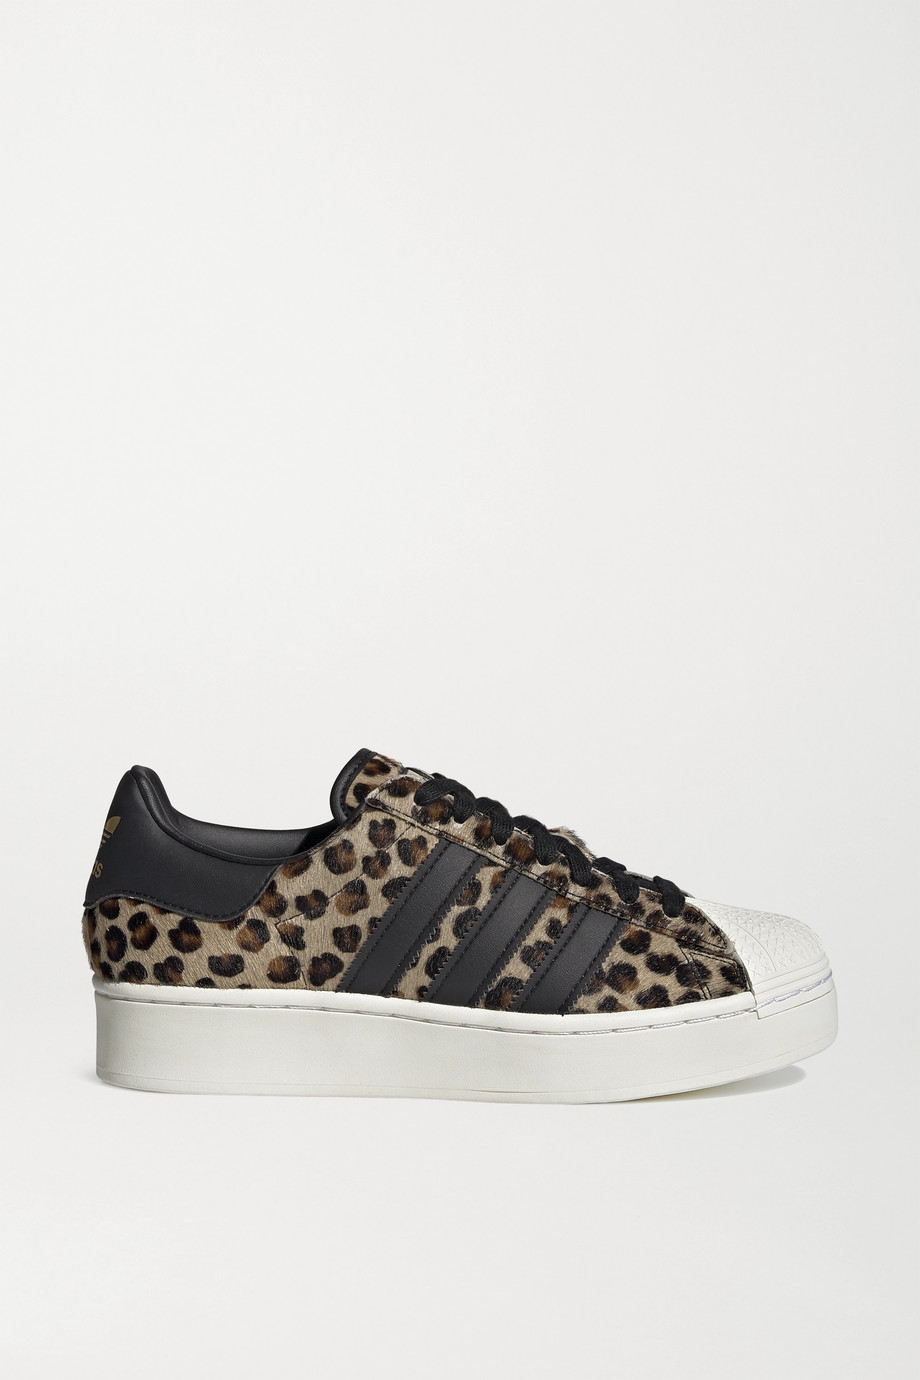 ADIDAS ORIGINALS + atmos Superstar Bold leather-trimmed leopard-print calf hair platform sneakers